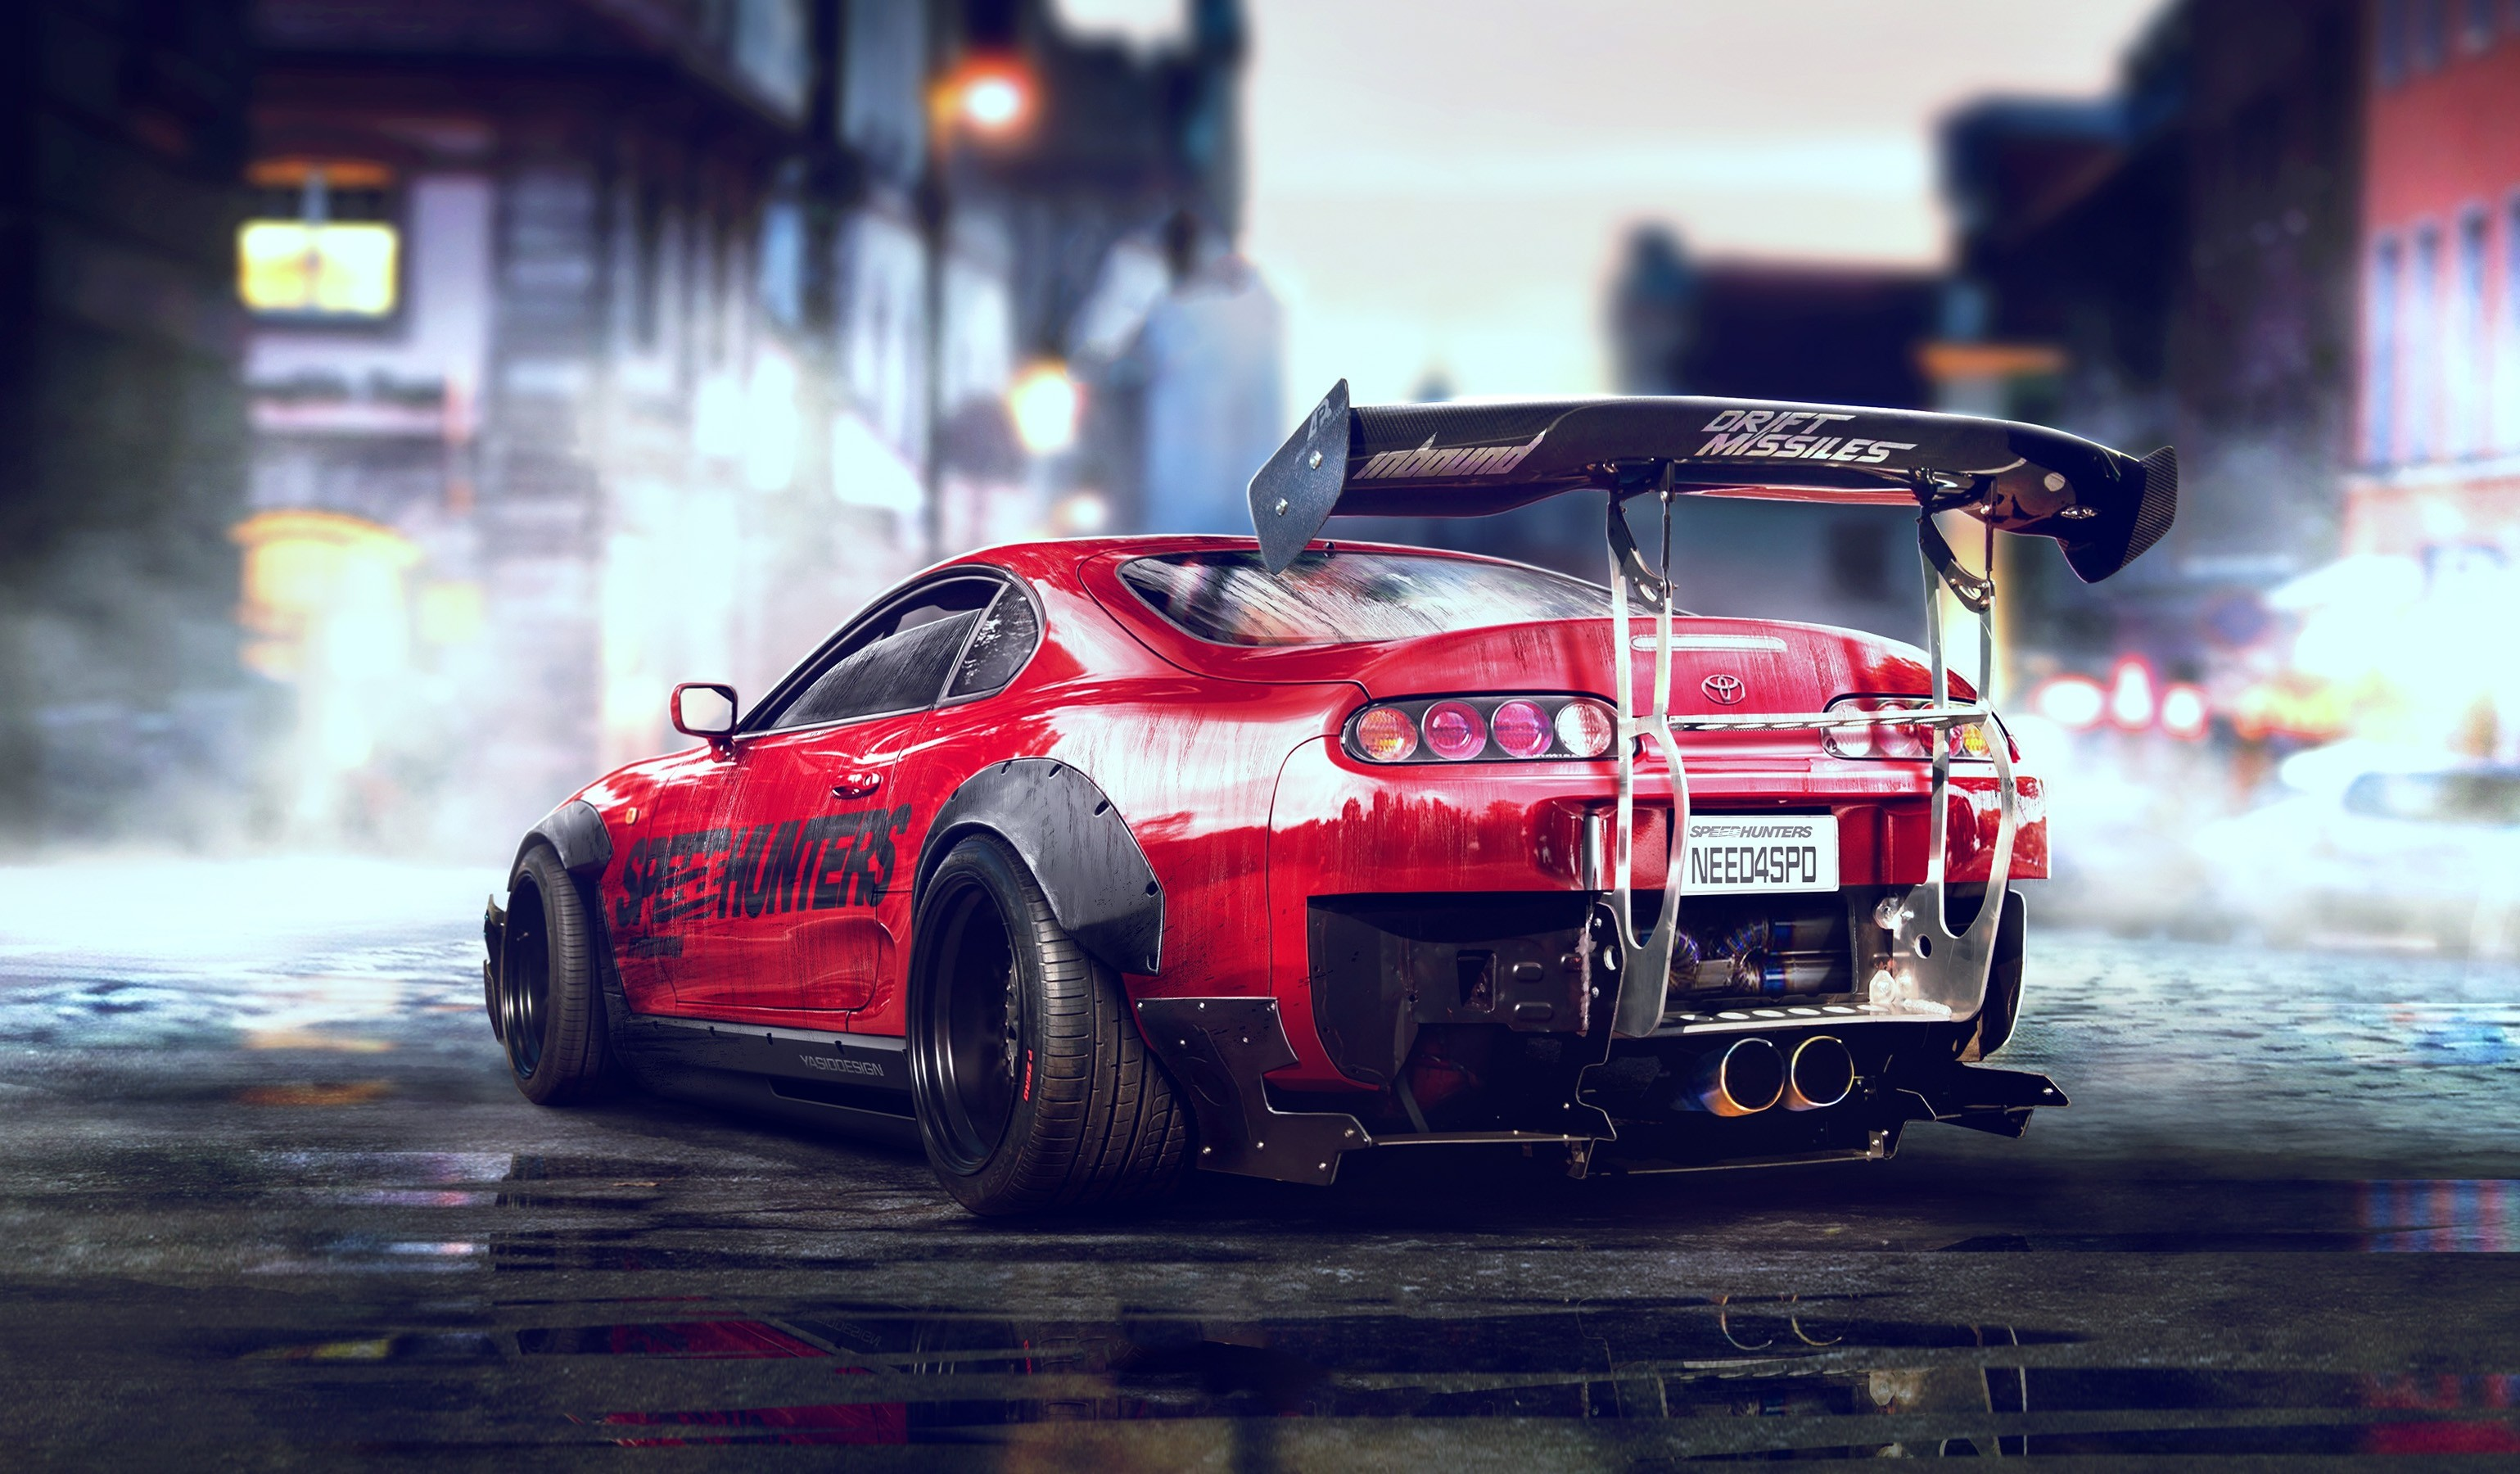 1920x1080 Toyota Supra JDM Tuning Front Fire Abstract Car 2014